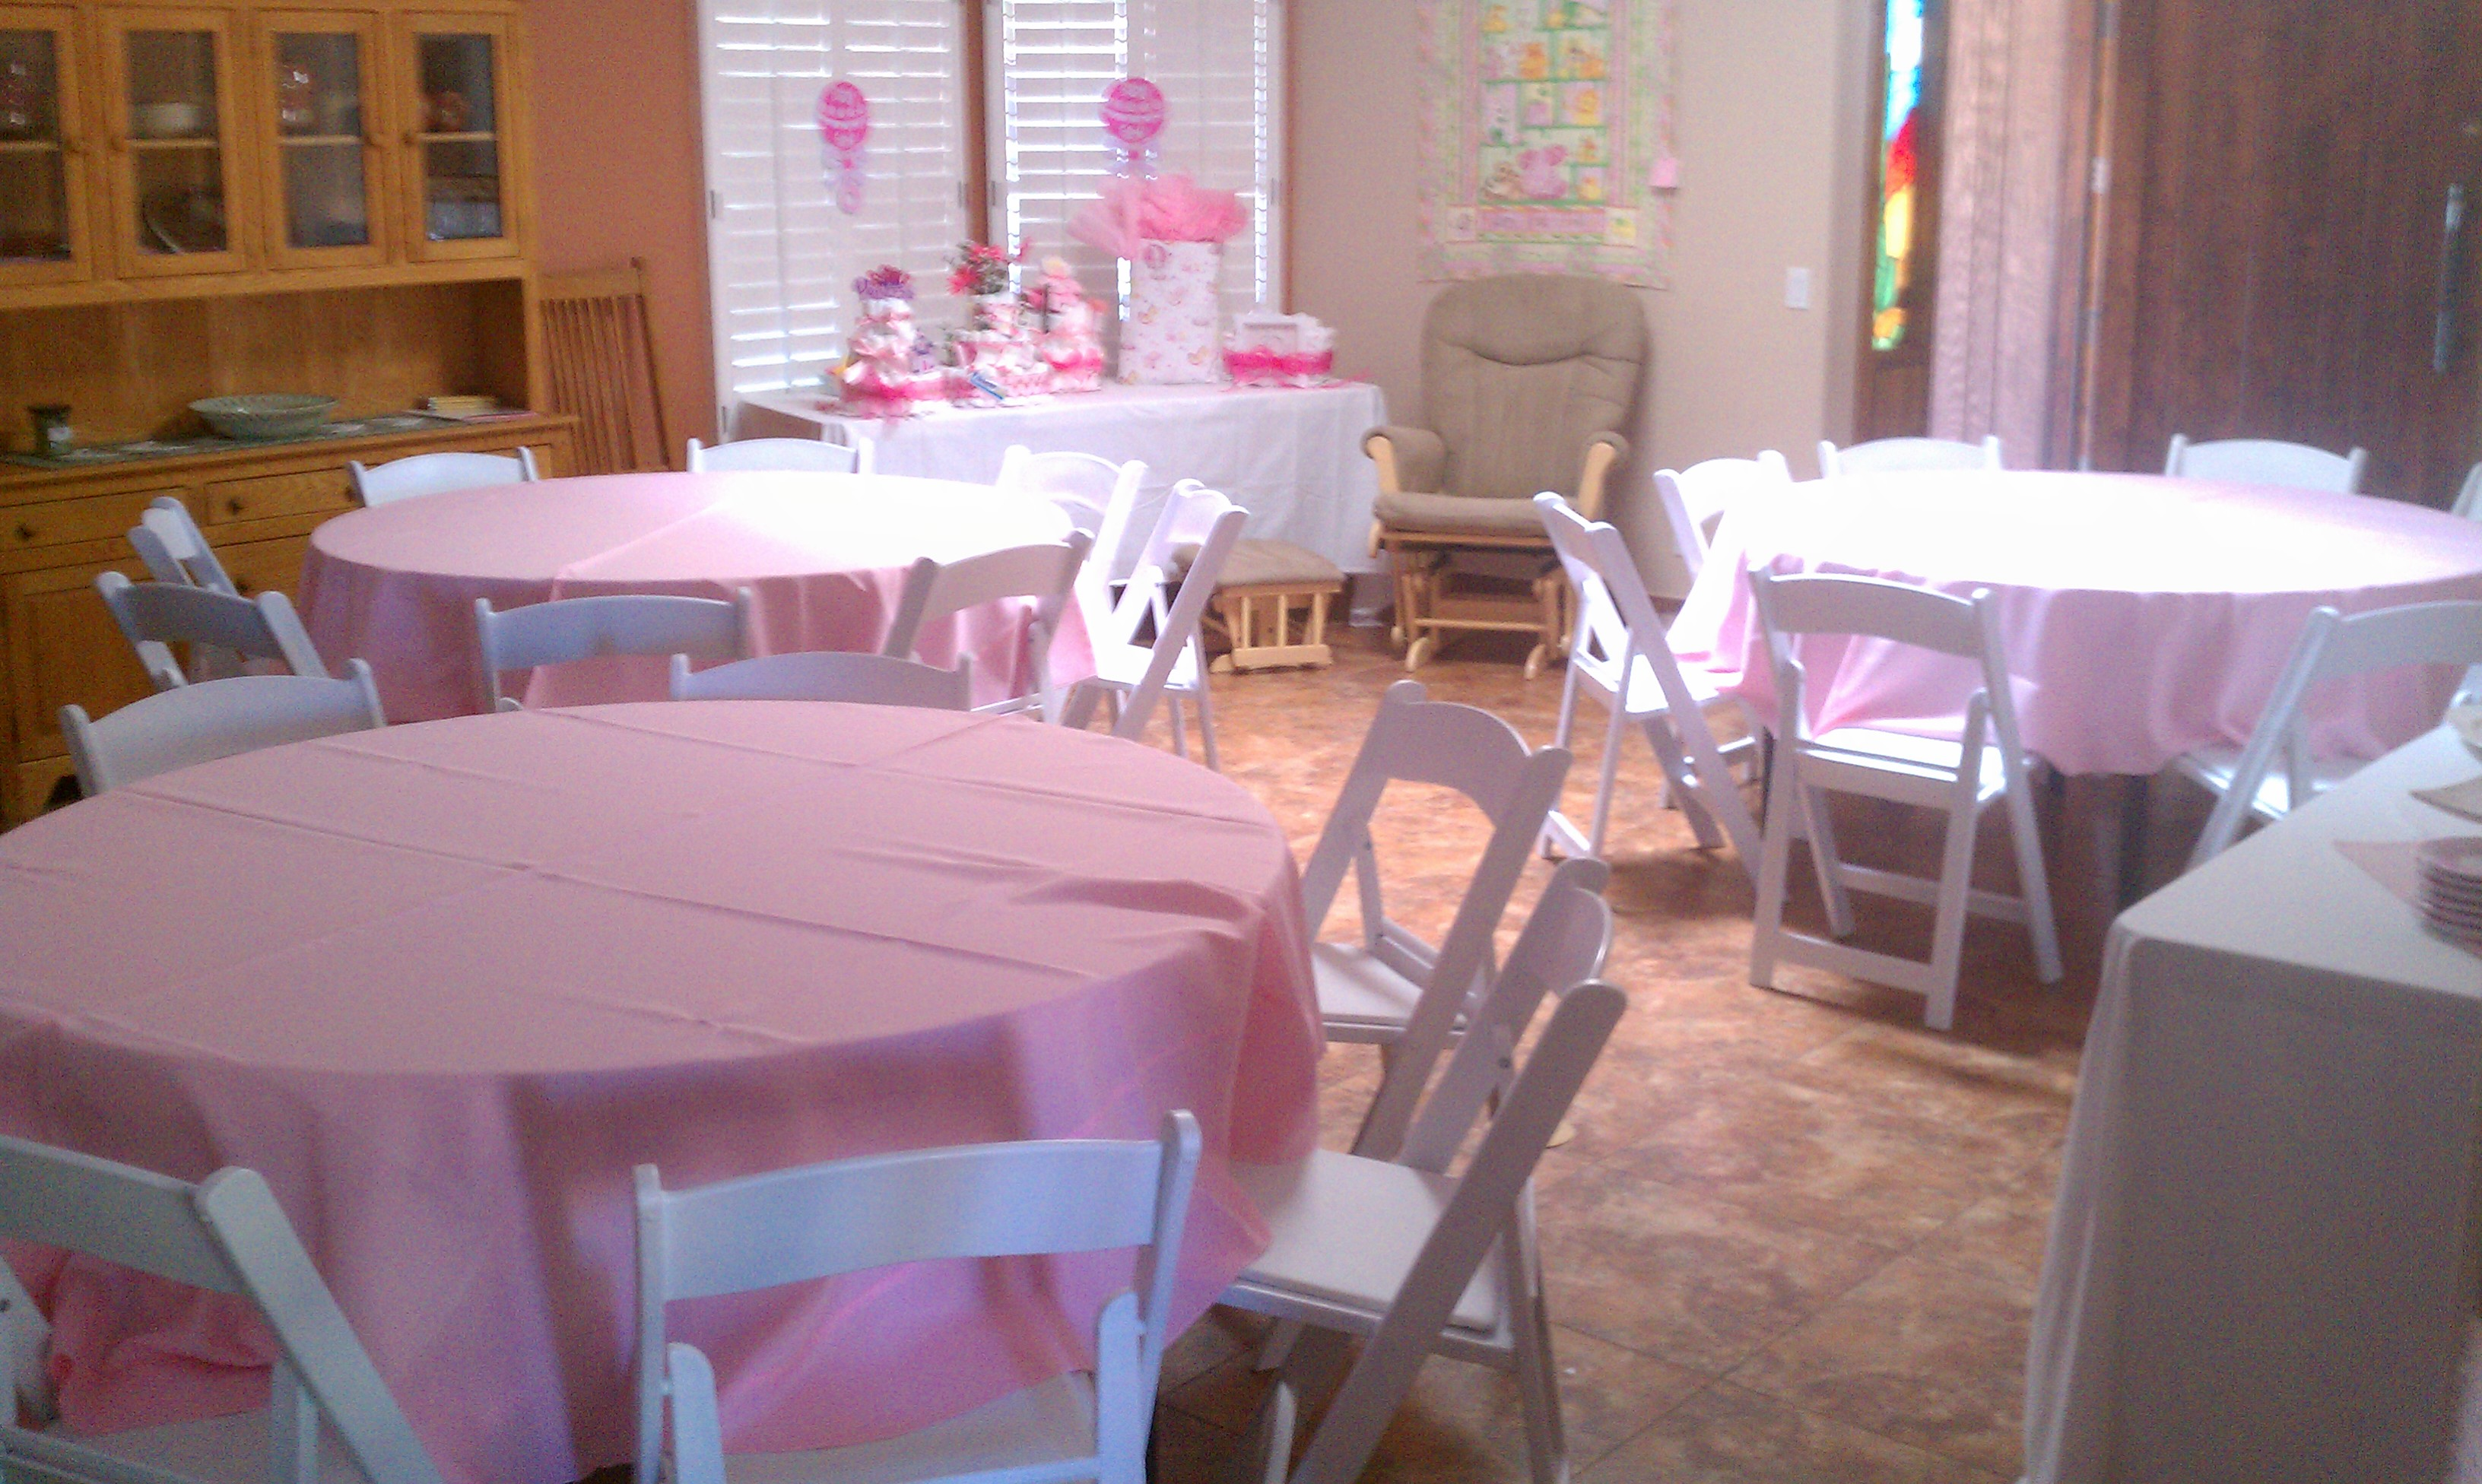 Outstanding Baby Shower Table Decorations 3264 x 1952 · 1337 kB · jpeg